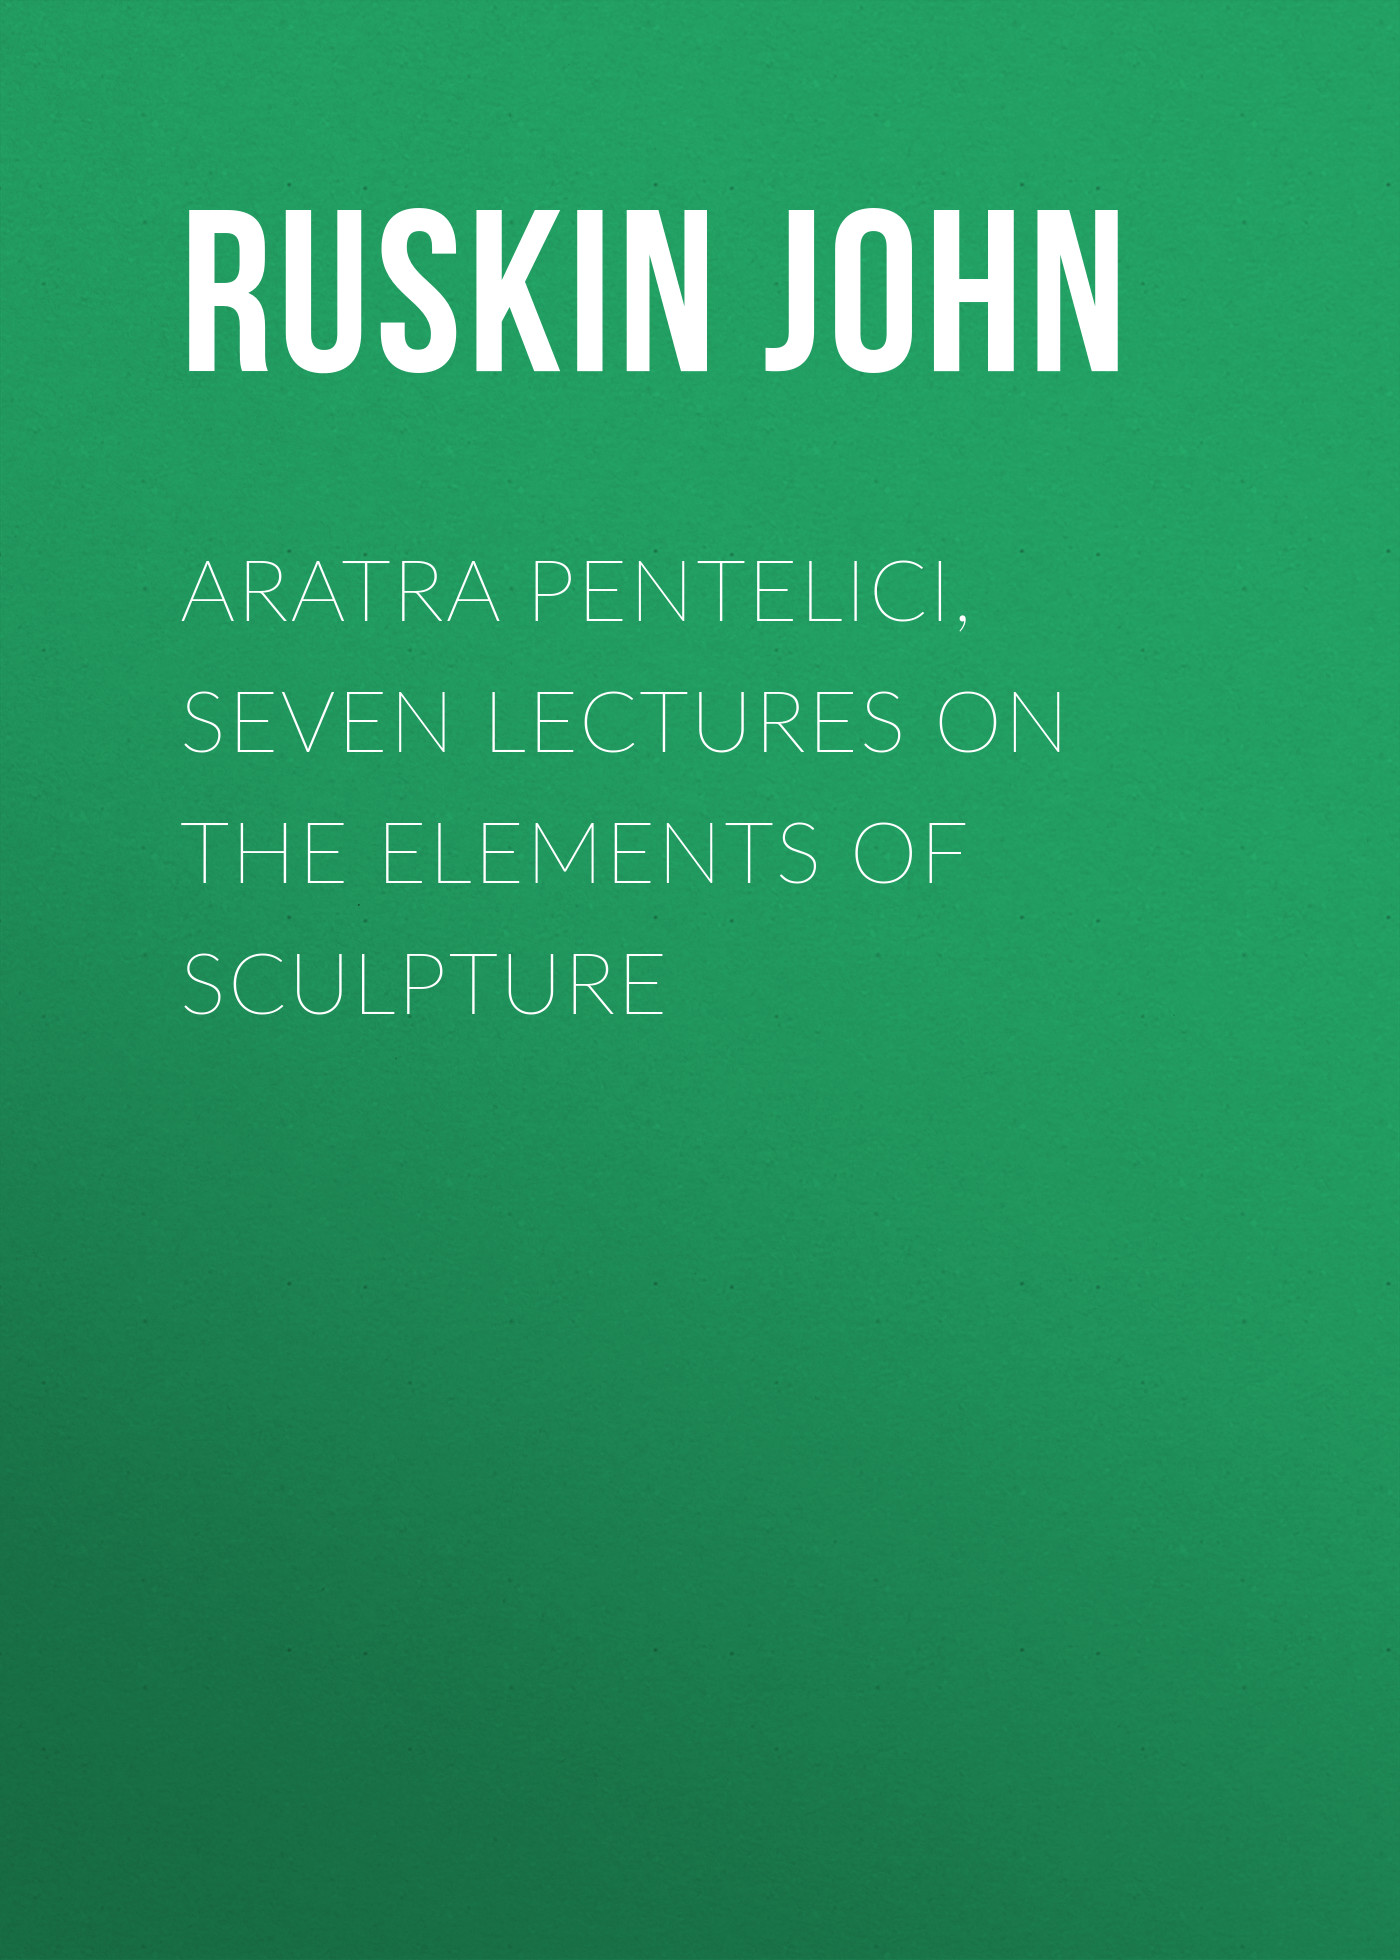 купить Ruskin John Aratra Pentelici, Seven Lectures on the Elements of Sculpture по цене 0 рублей